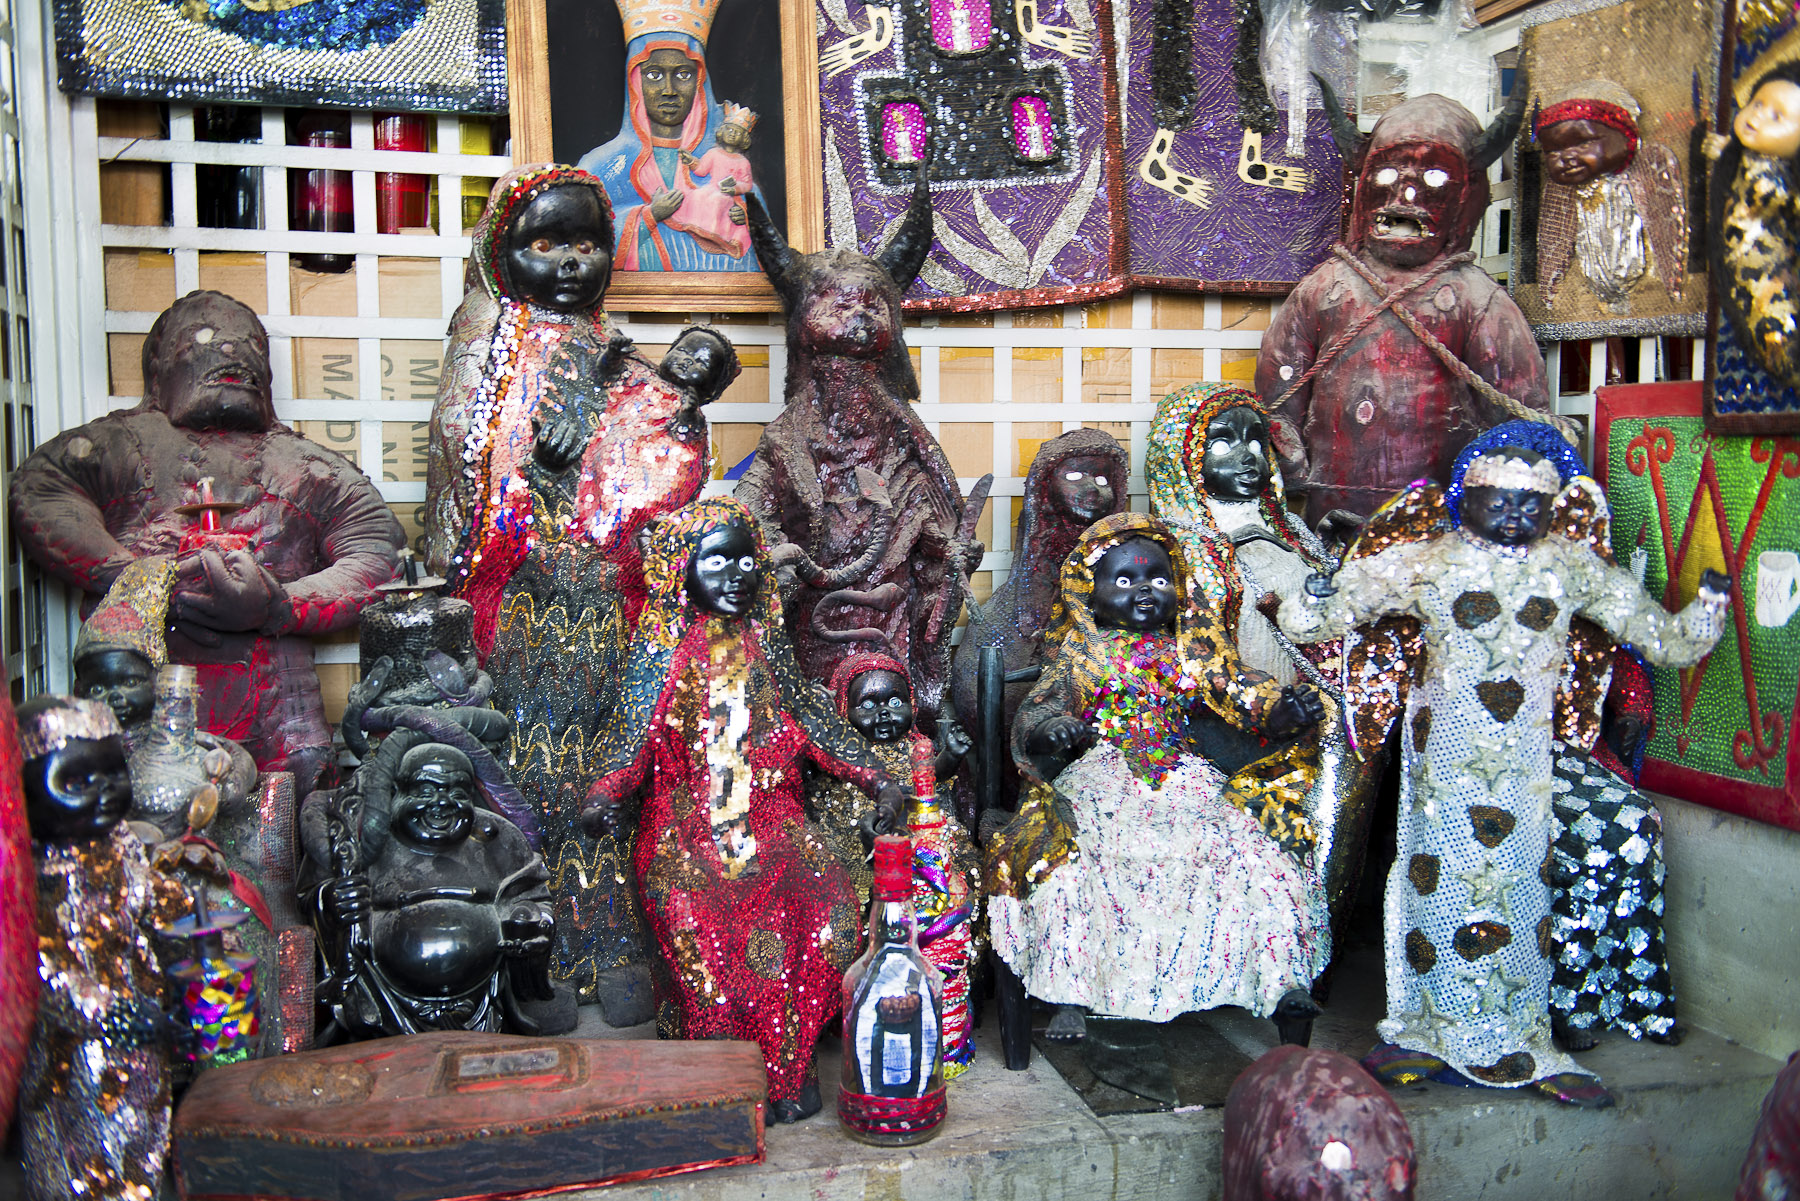 Vodou Family. 2012, Archival pigment on cotton rag paper, 20 x 30 inches